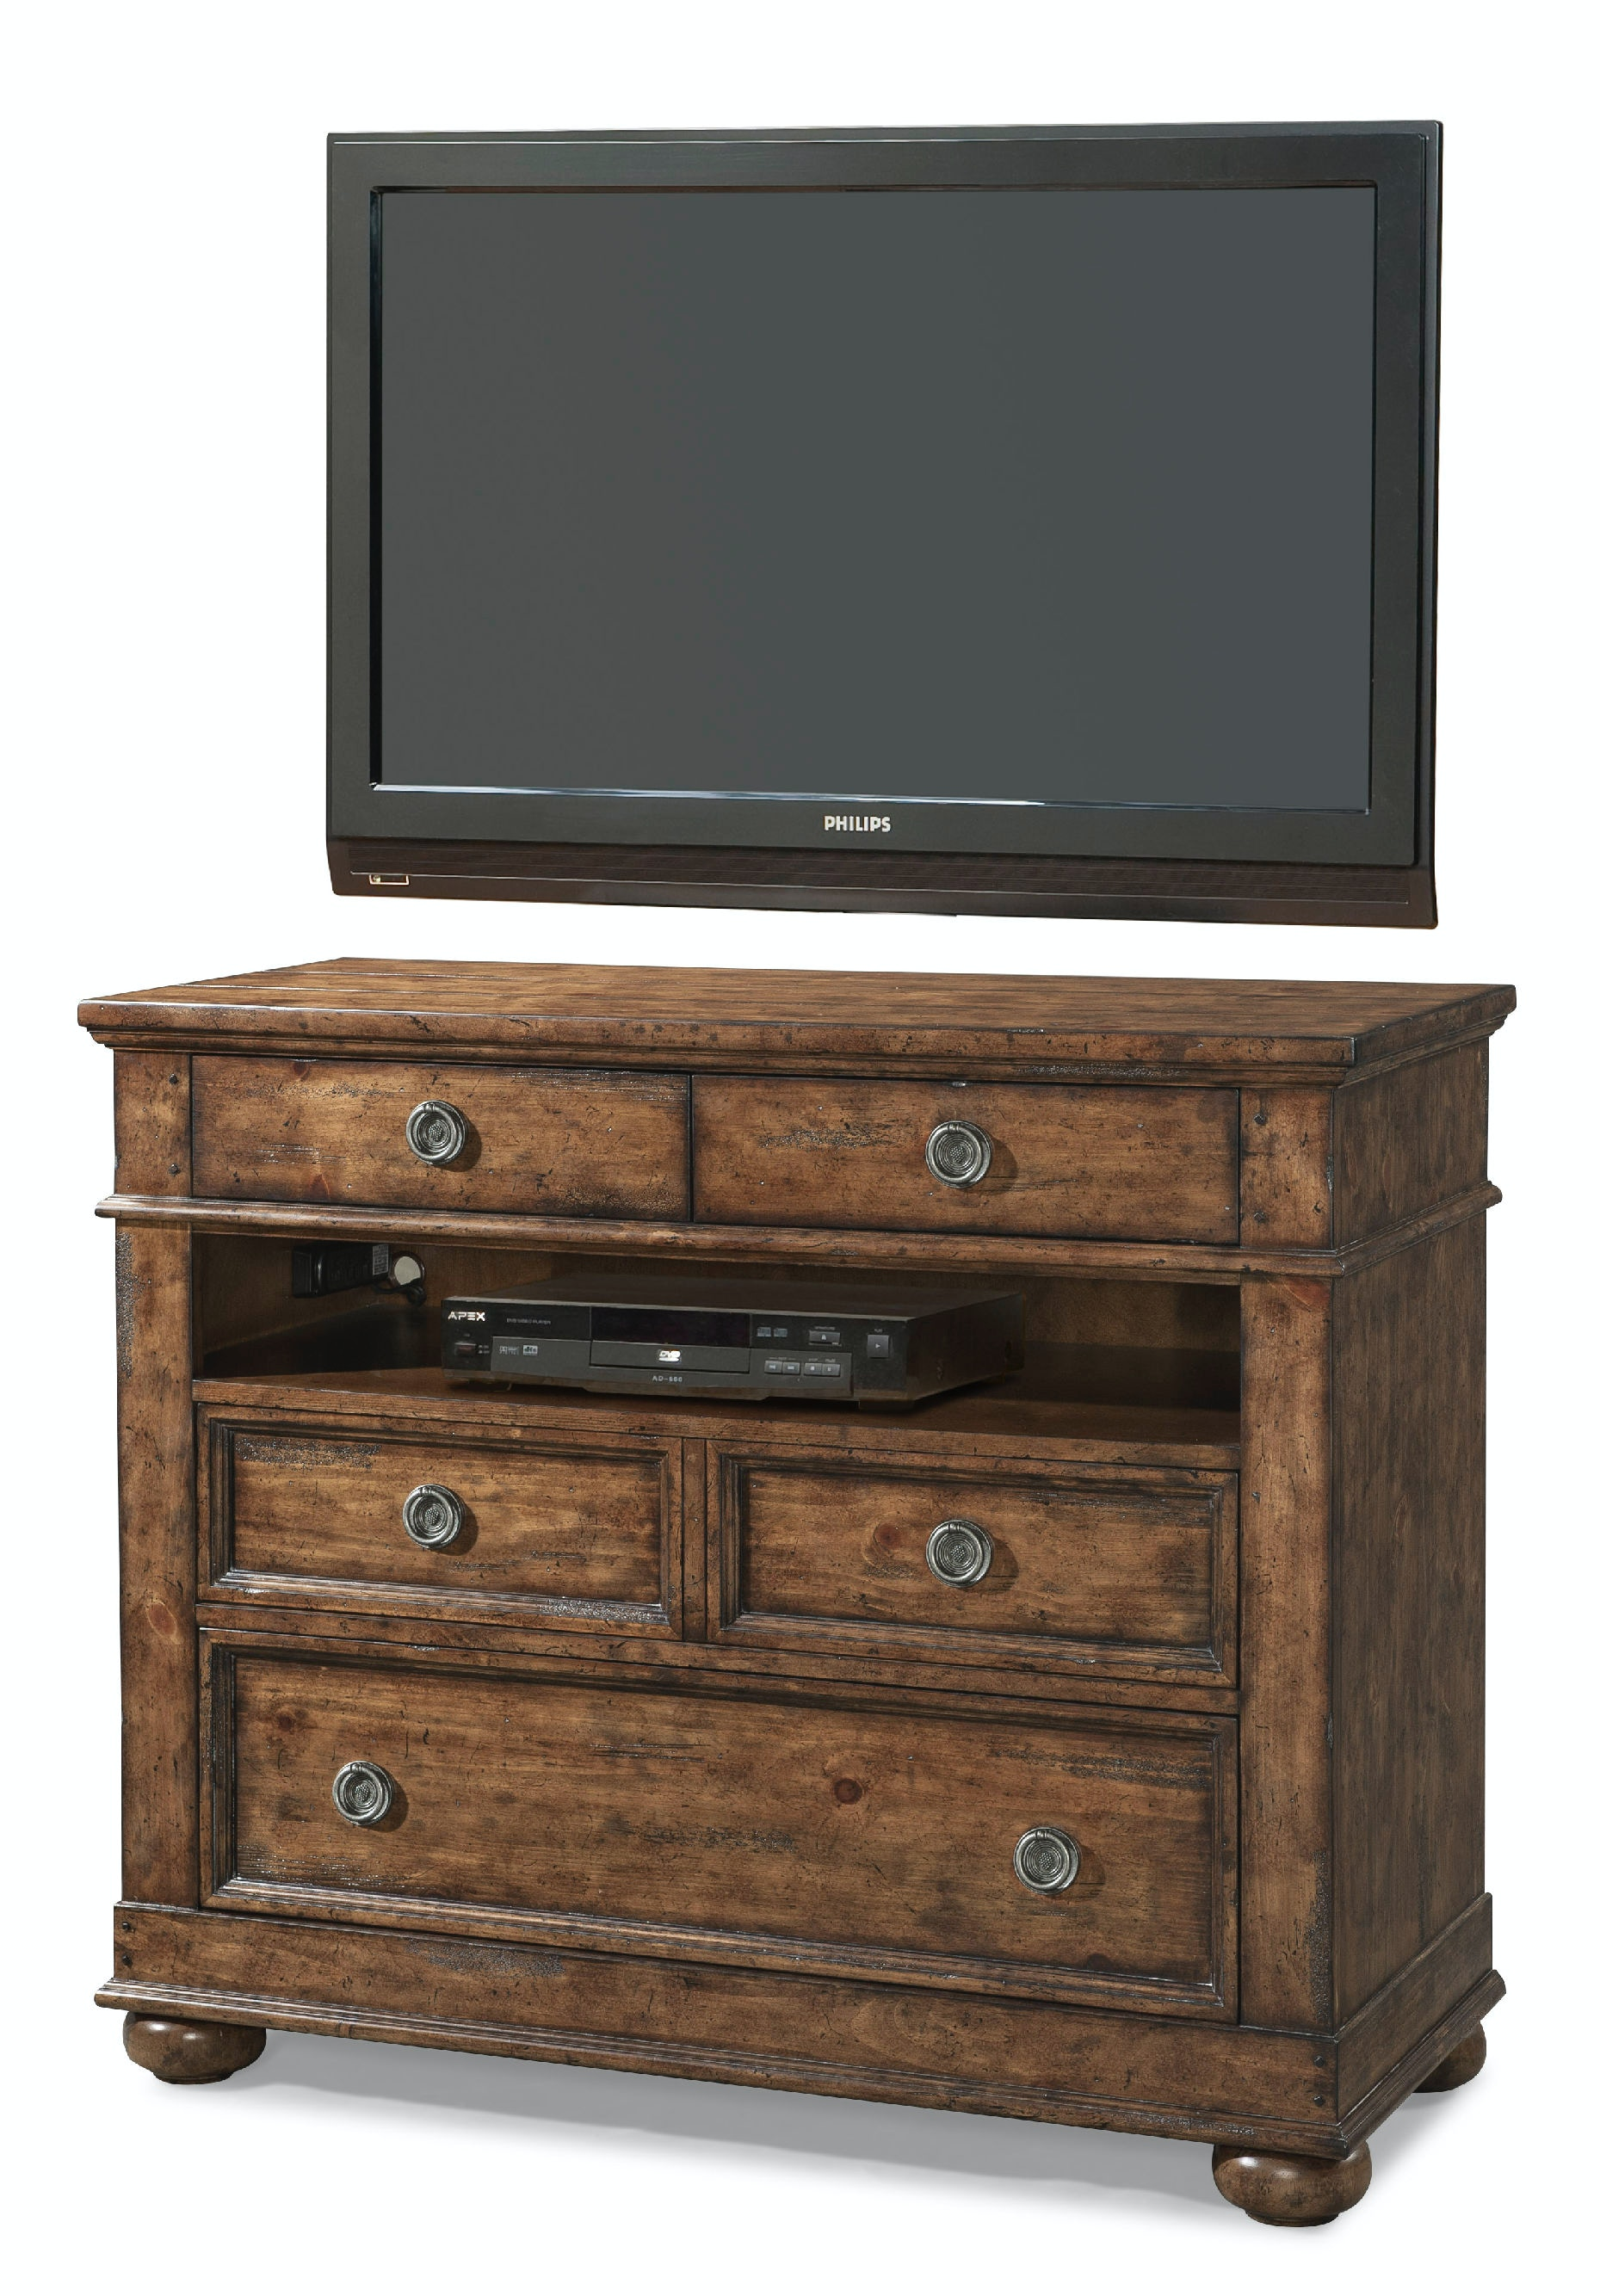 436 682 MCHES. Media Chest